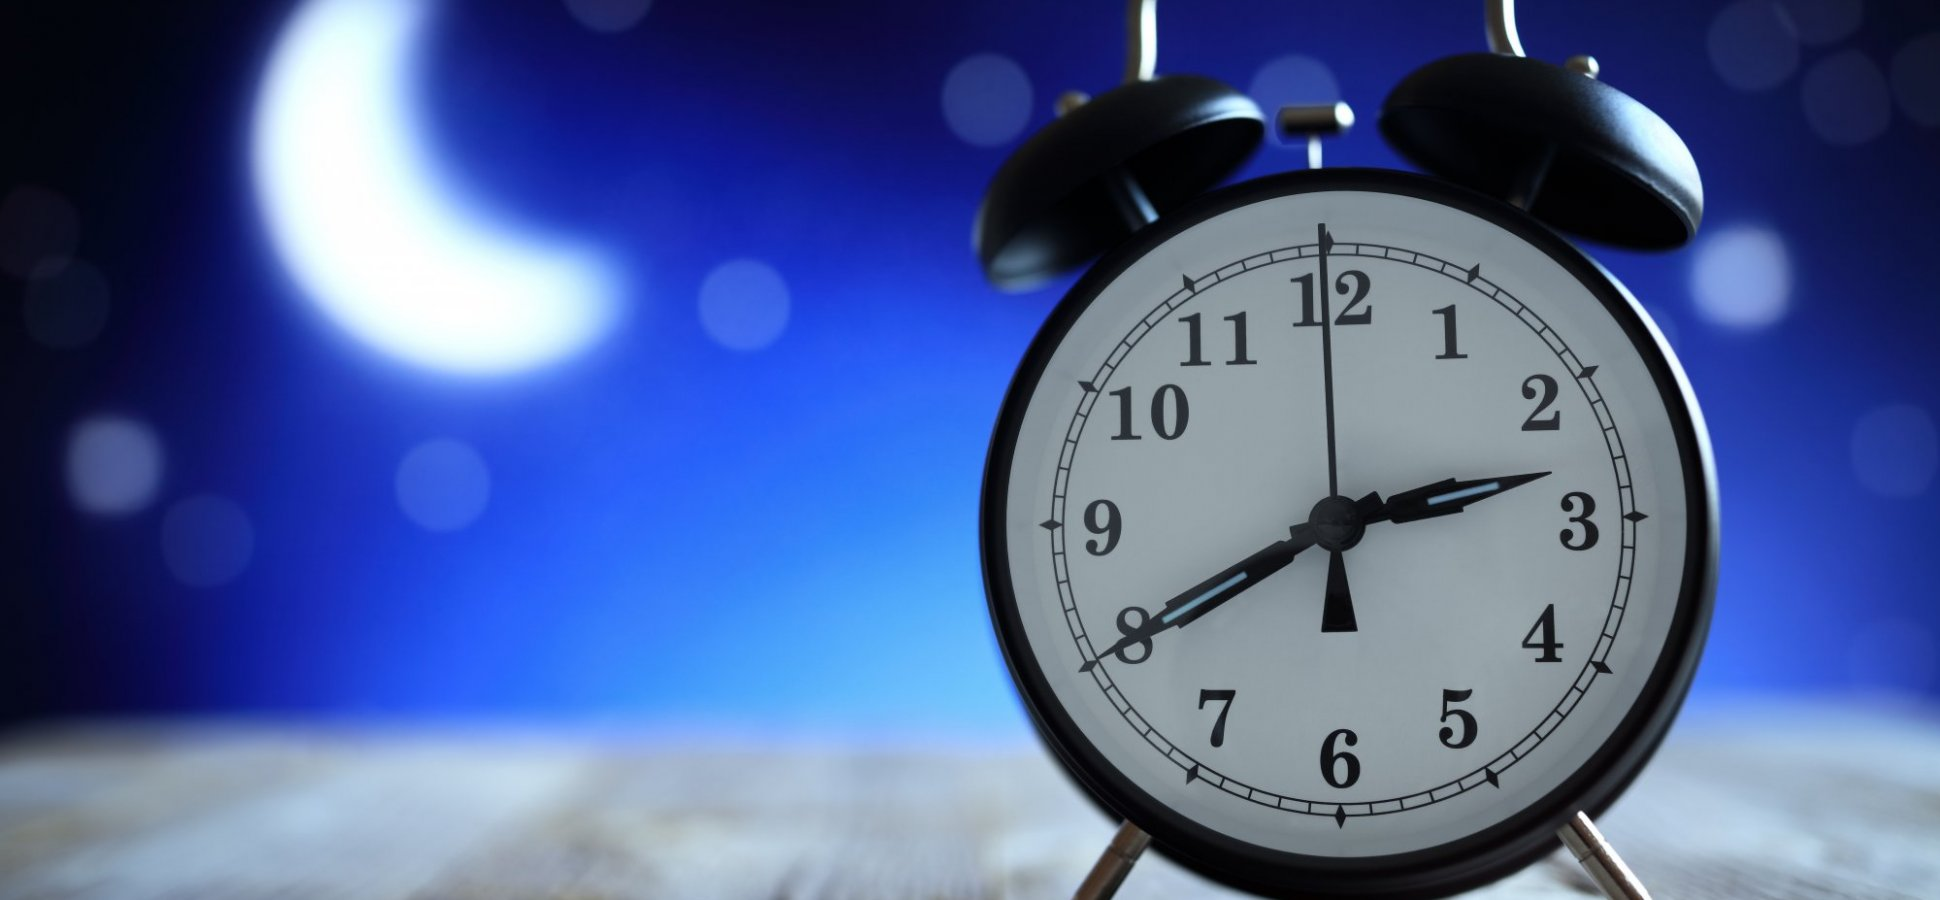 5 Scientifically-Proven Hacks for People Who Have Problems With Sleep